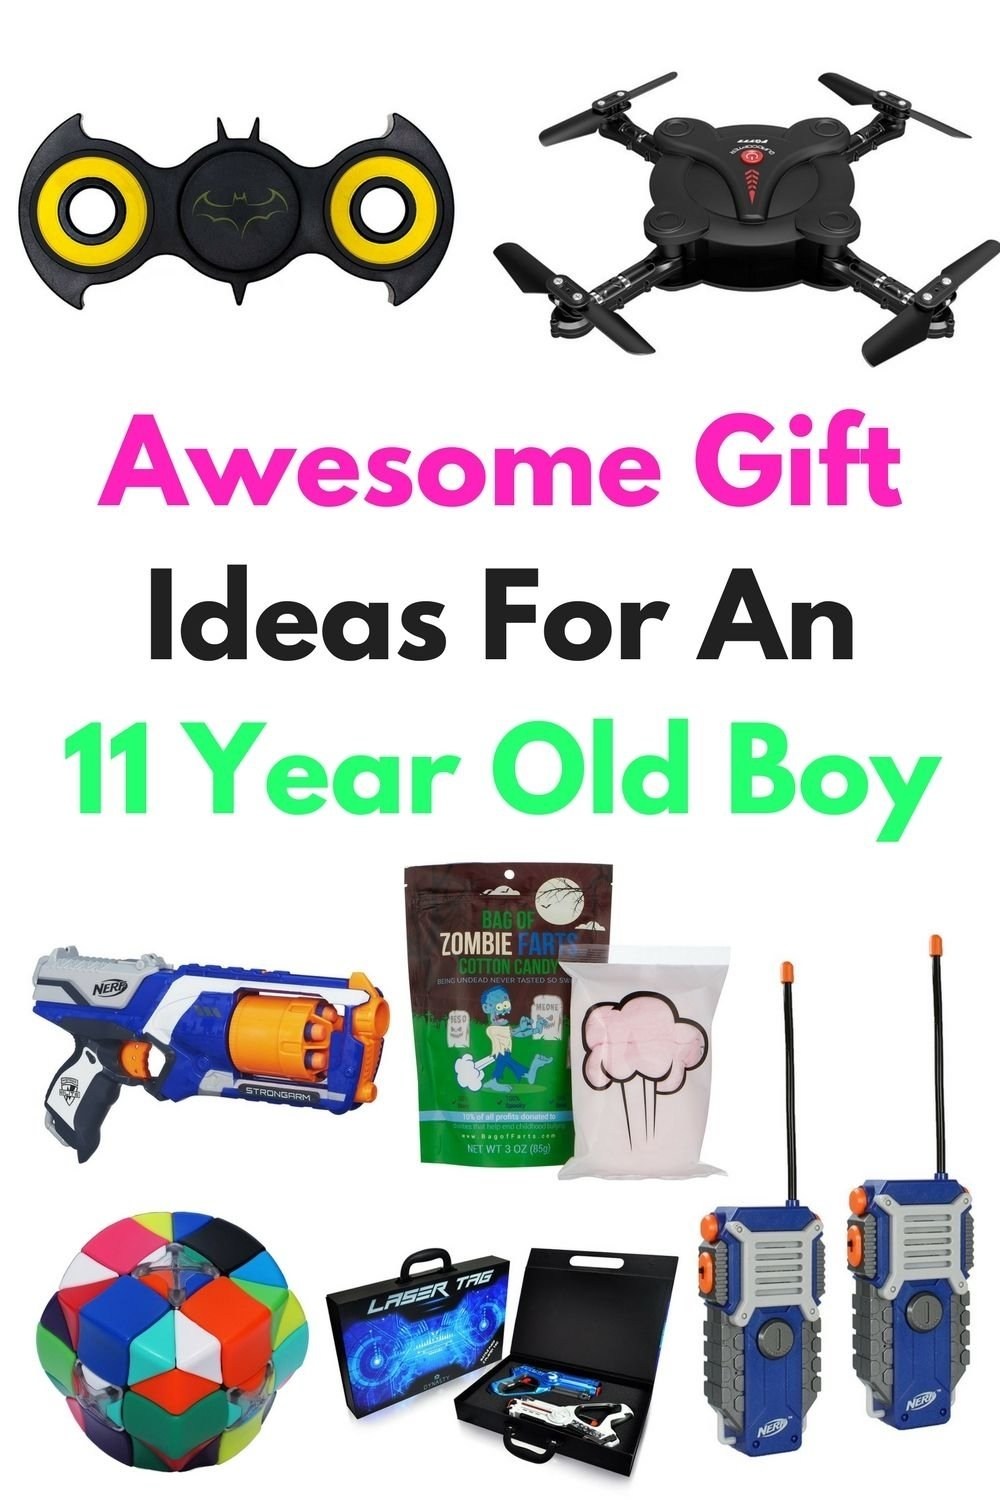 10 Famous Gift Idea For 12 Year Old Boy awesome gift ideas for an 11 year old boy awesome gifts easter 1 2020